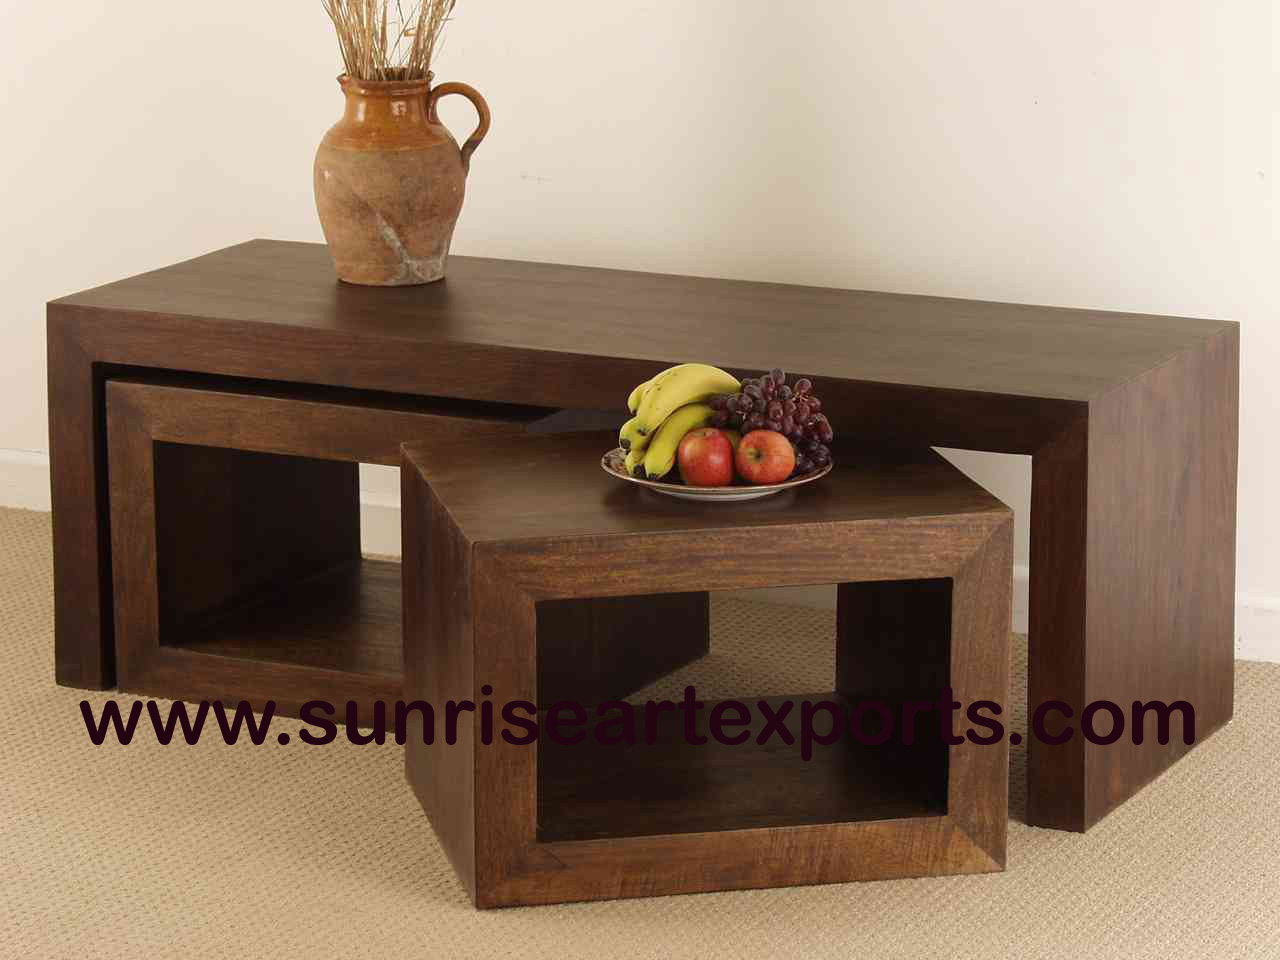 It Includes Mango Wood Beds, Mango Wood Cabinets, Mango Wood Chest Of  Drawers, Mango Wood Tables, Mango Wood Benches, Mango Wood Sideboards, ...